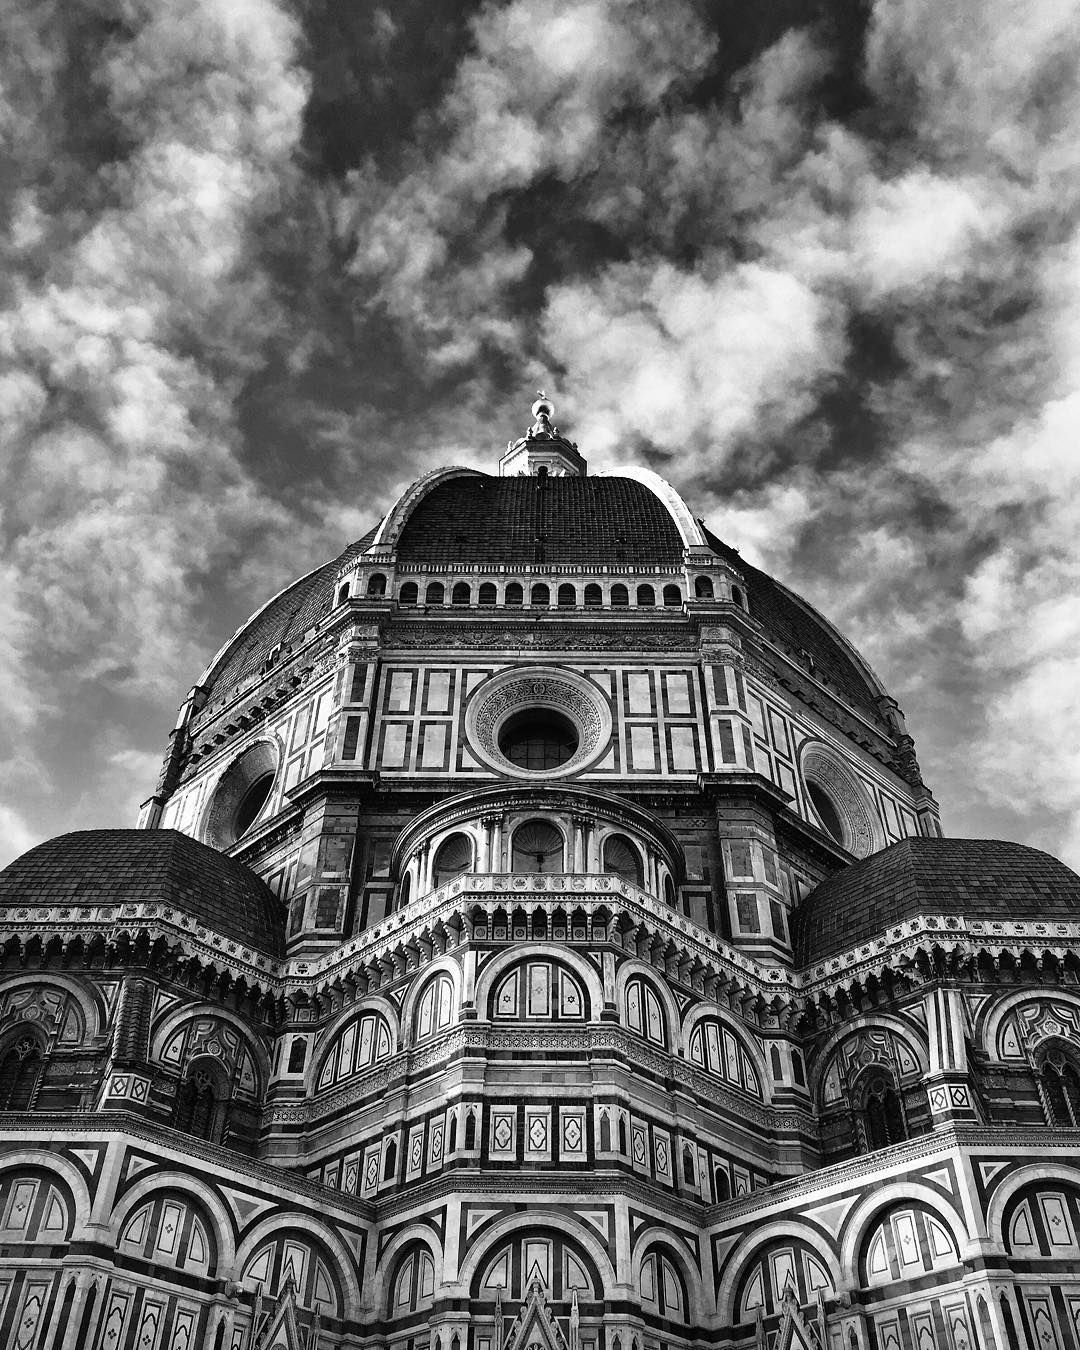 Una prospettiva un po' inquietante.  #Duomo #Firenze #blackandwhite #vsco #ig_firenze #justgoshoot #phototag_it #photooftheday #igfriends_toscana #igersitalia #vscogang #instadaily by lore_flood